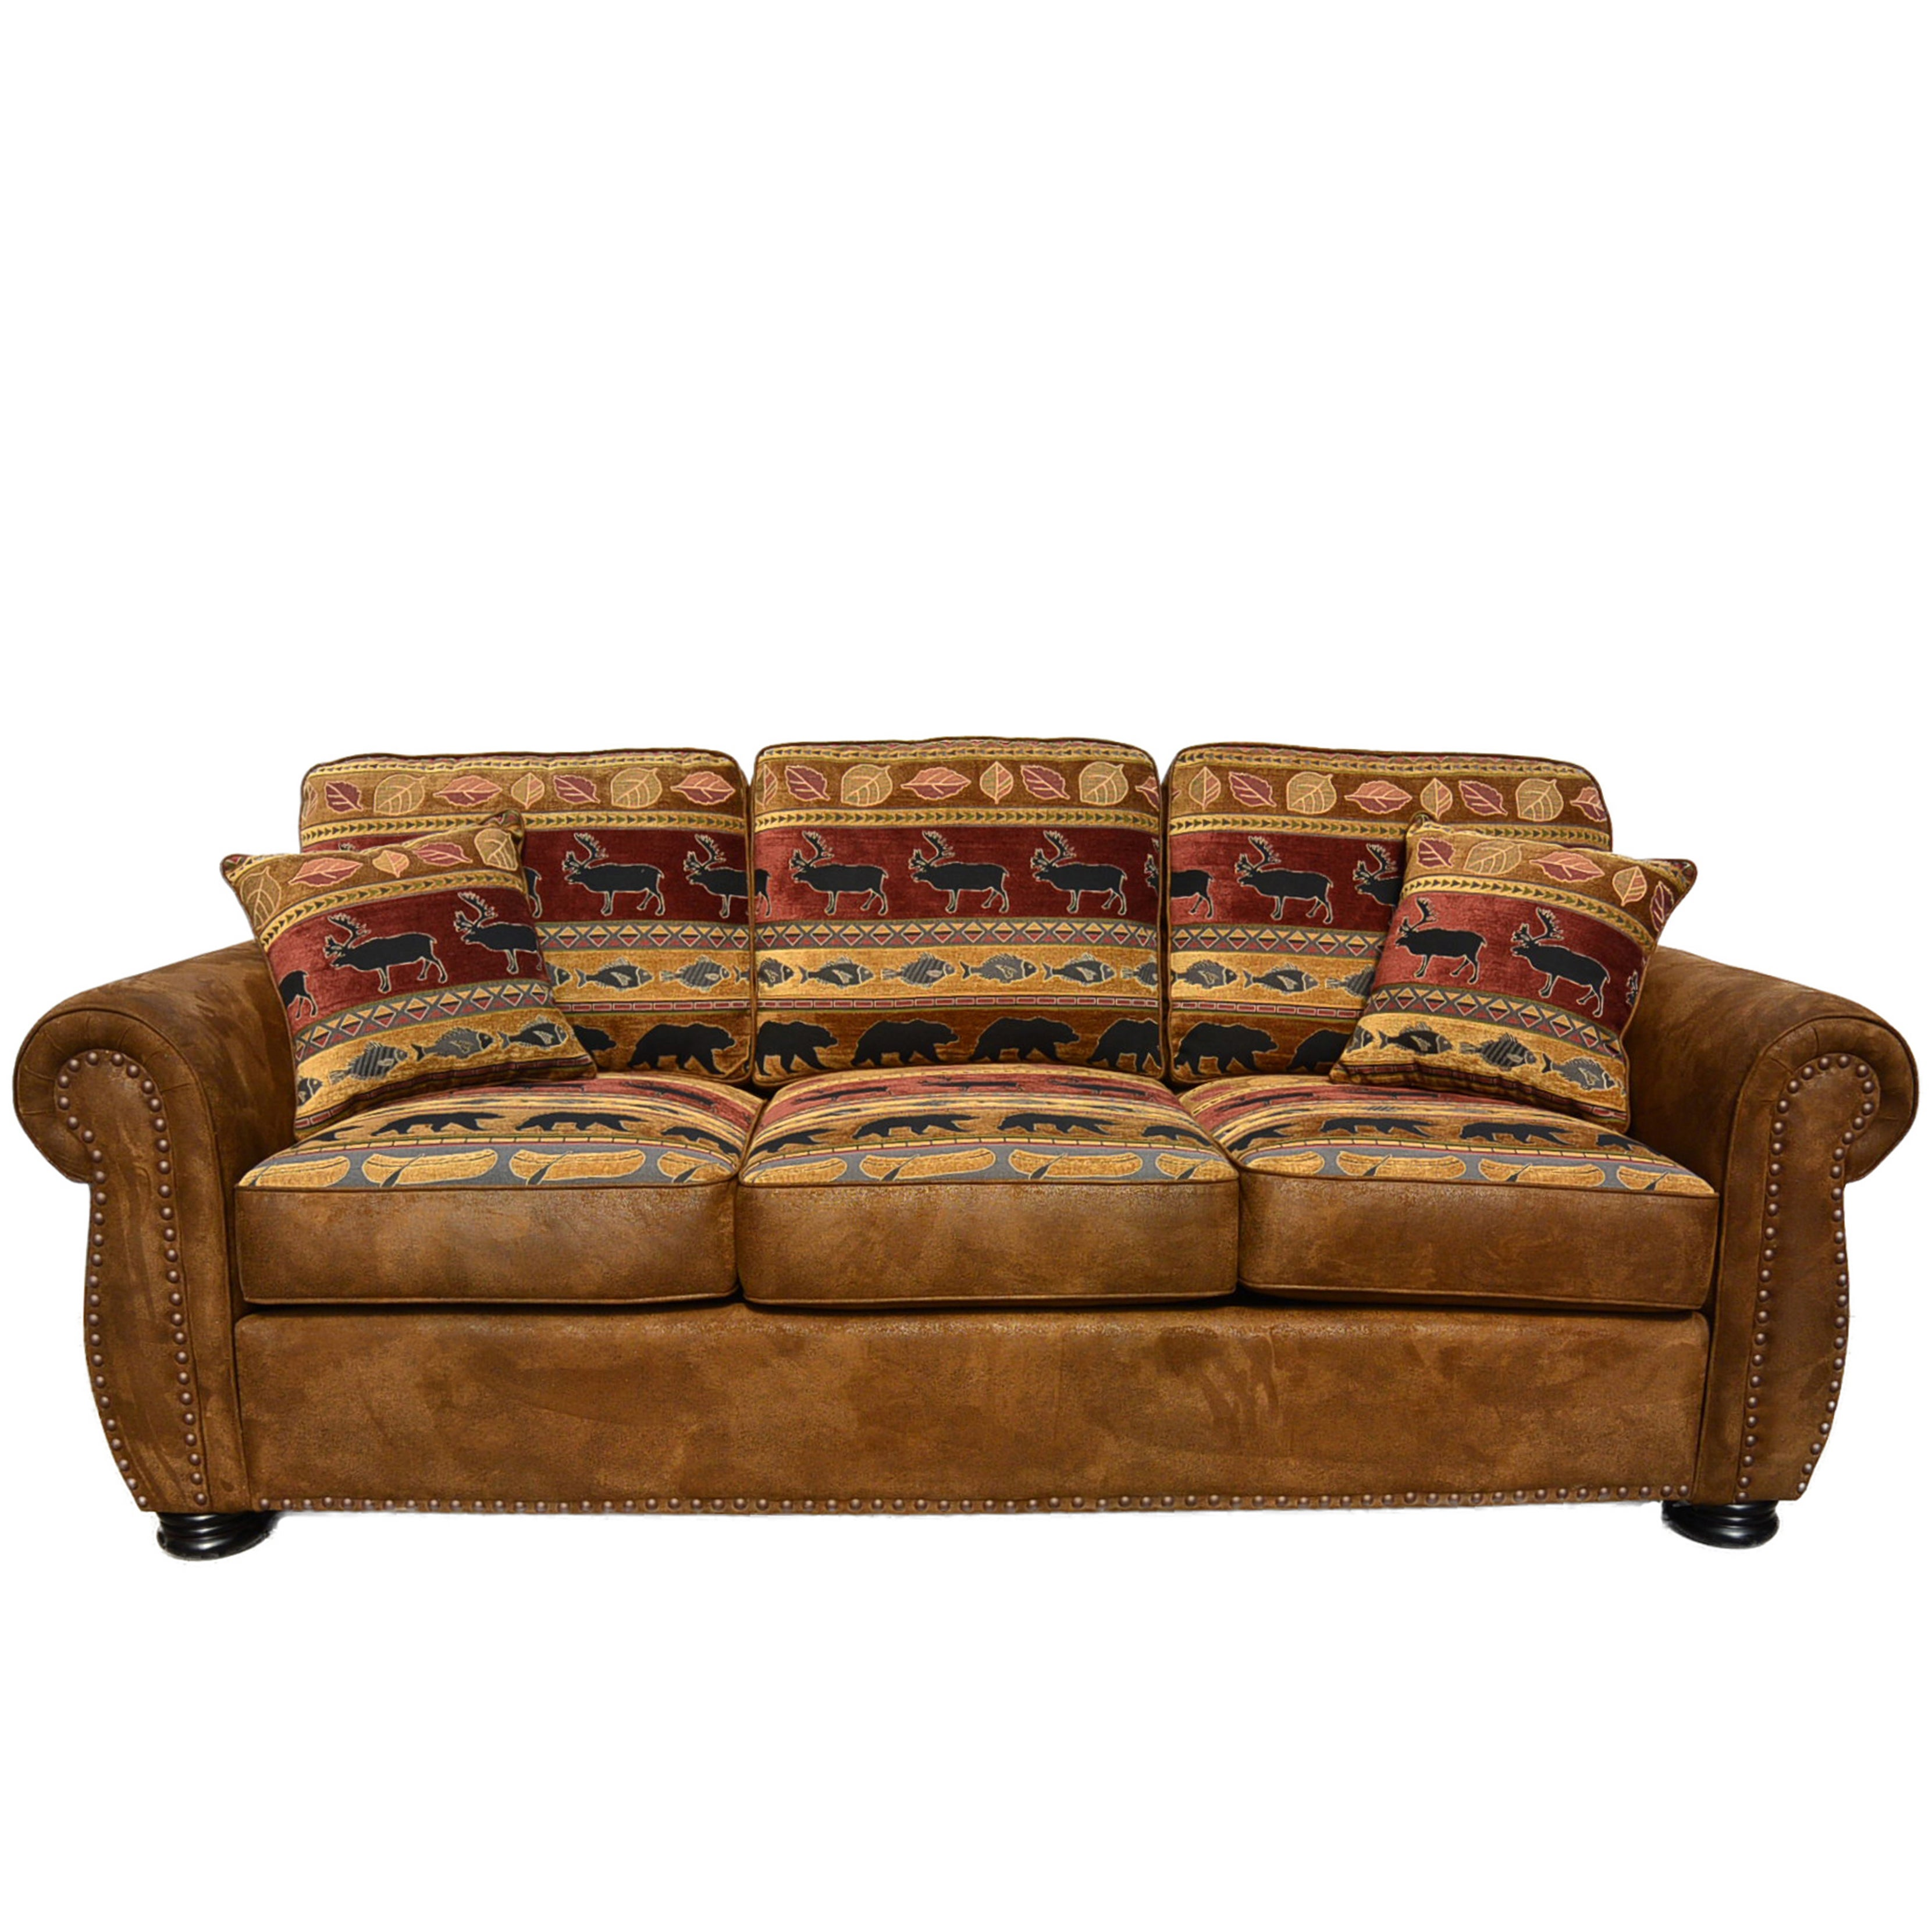 Shop Porter Hunter Lodge Style Brown Sofa With Deer, Bear And Fish Fabric    Free Shipping Today   Overstock.com   11600108